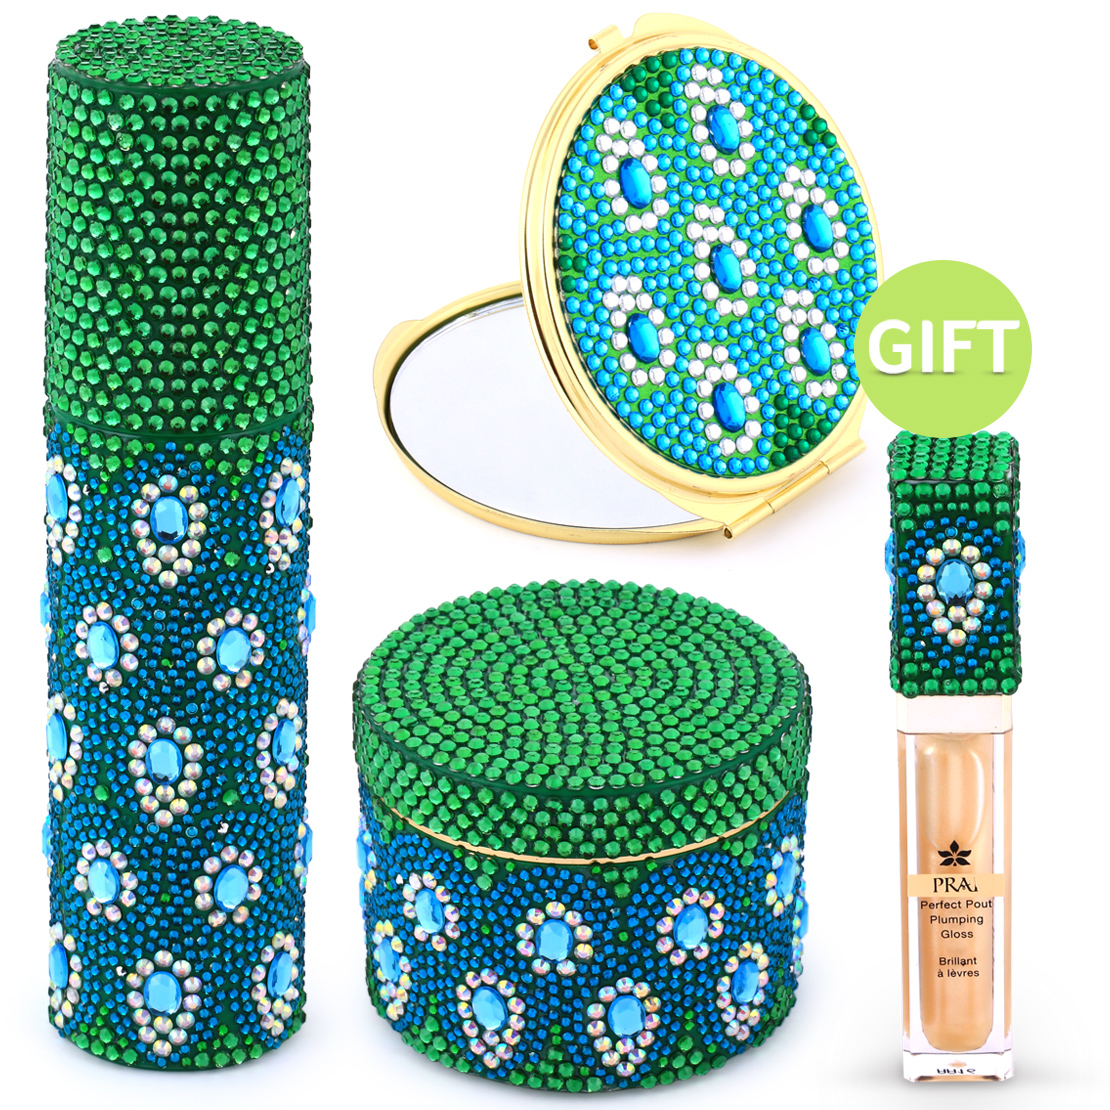 Golden Jeweled Peacock Emerald Set & Gifts